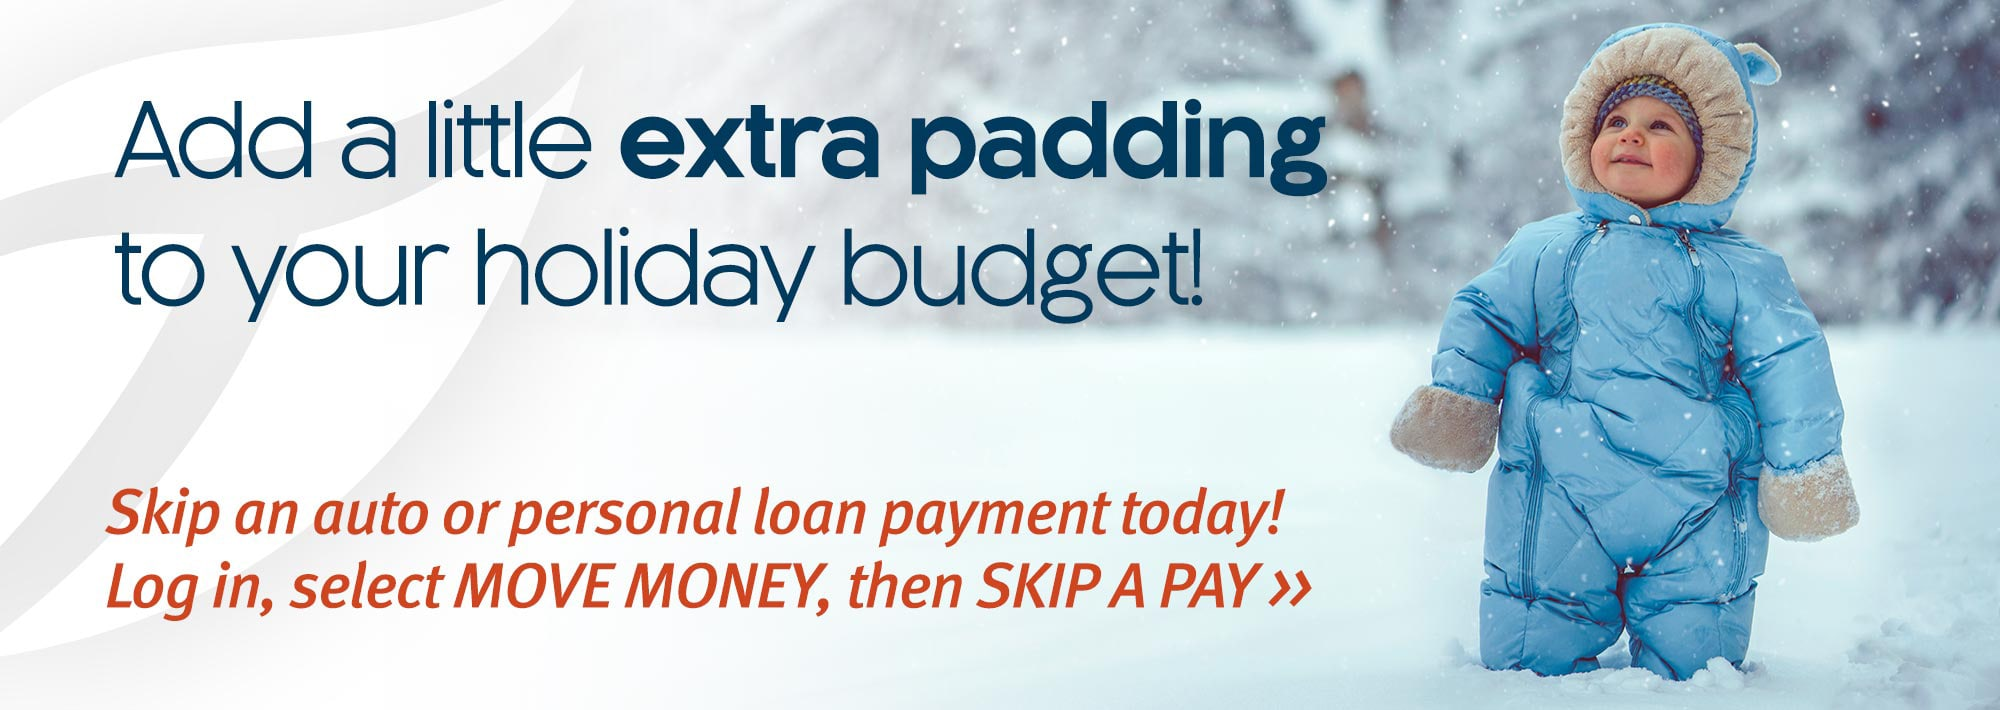 Add a little extra padding to your holiday budget! 